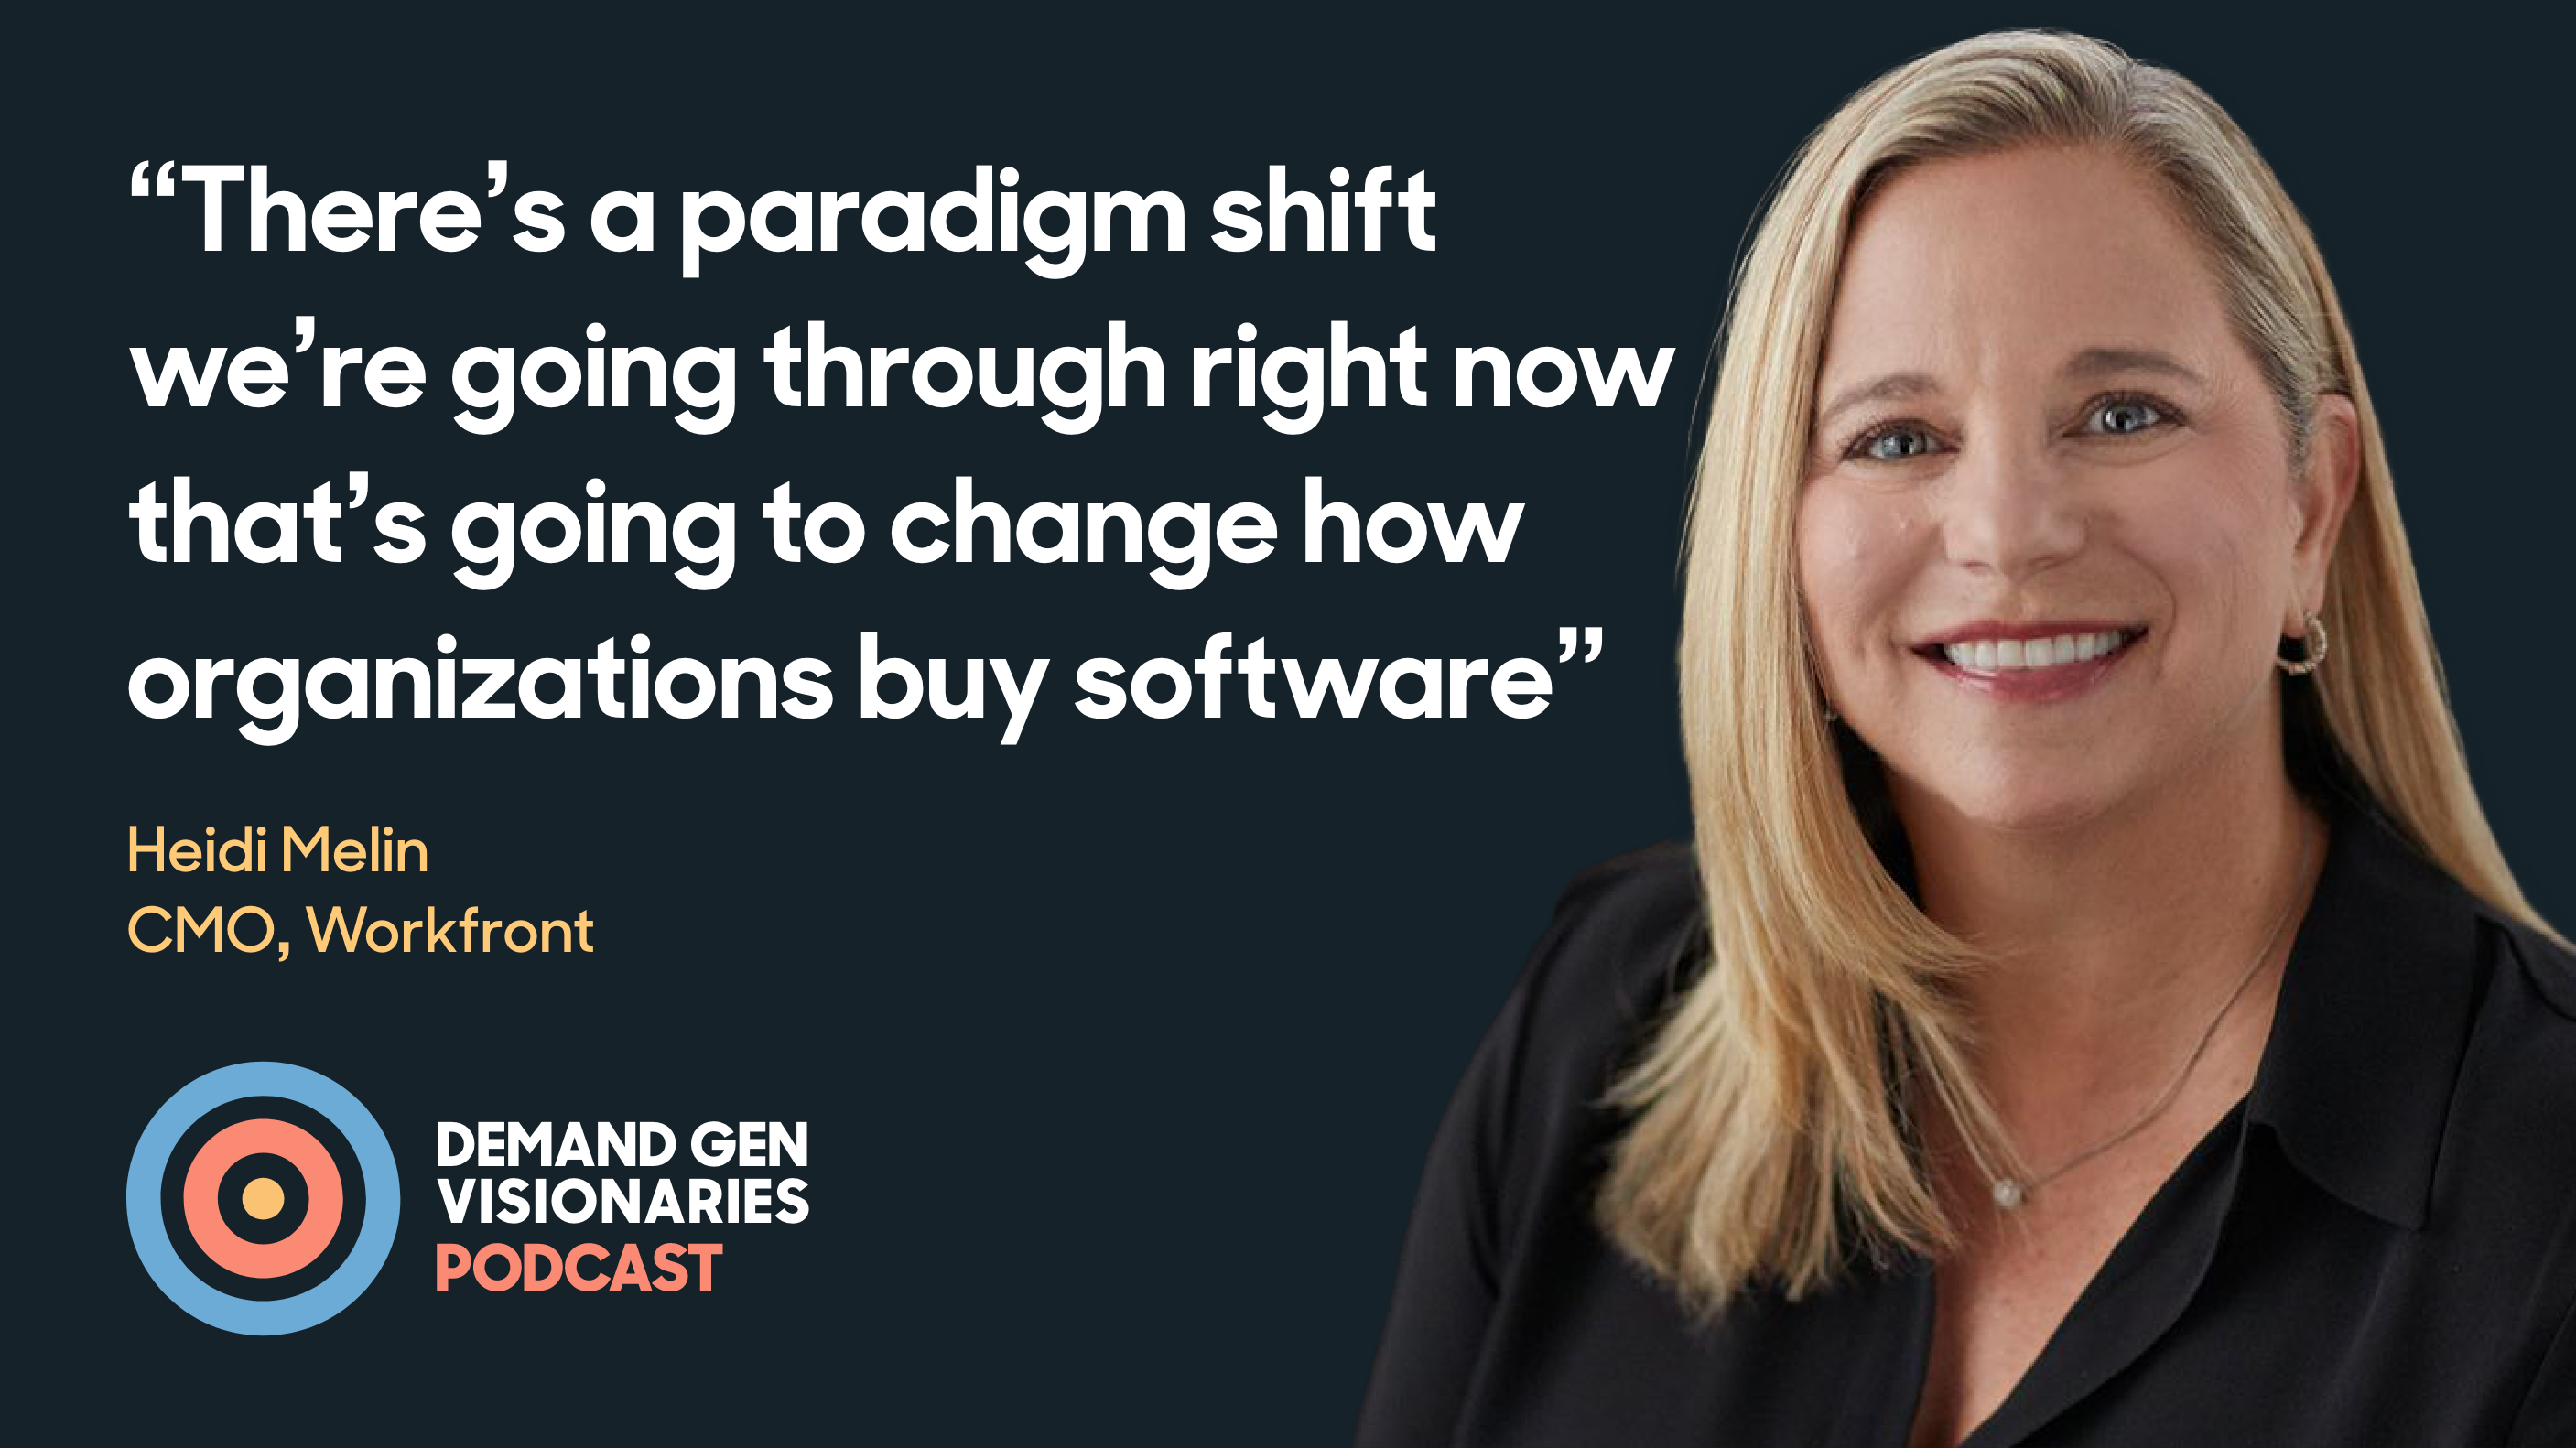 In this episode of the Demand Gen Visionaries podcast, we're joined by Heidi Melin, CMO of Workfront